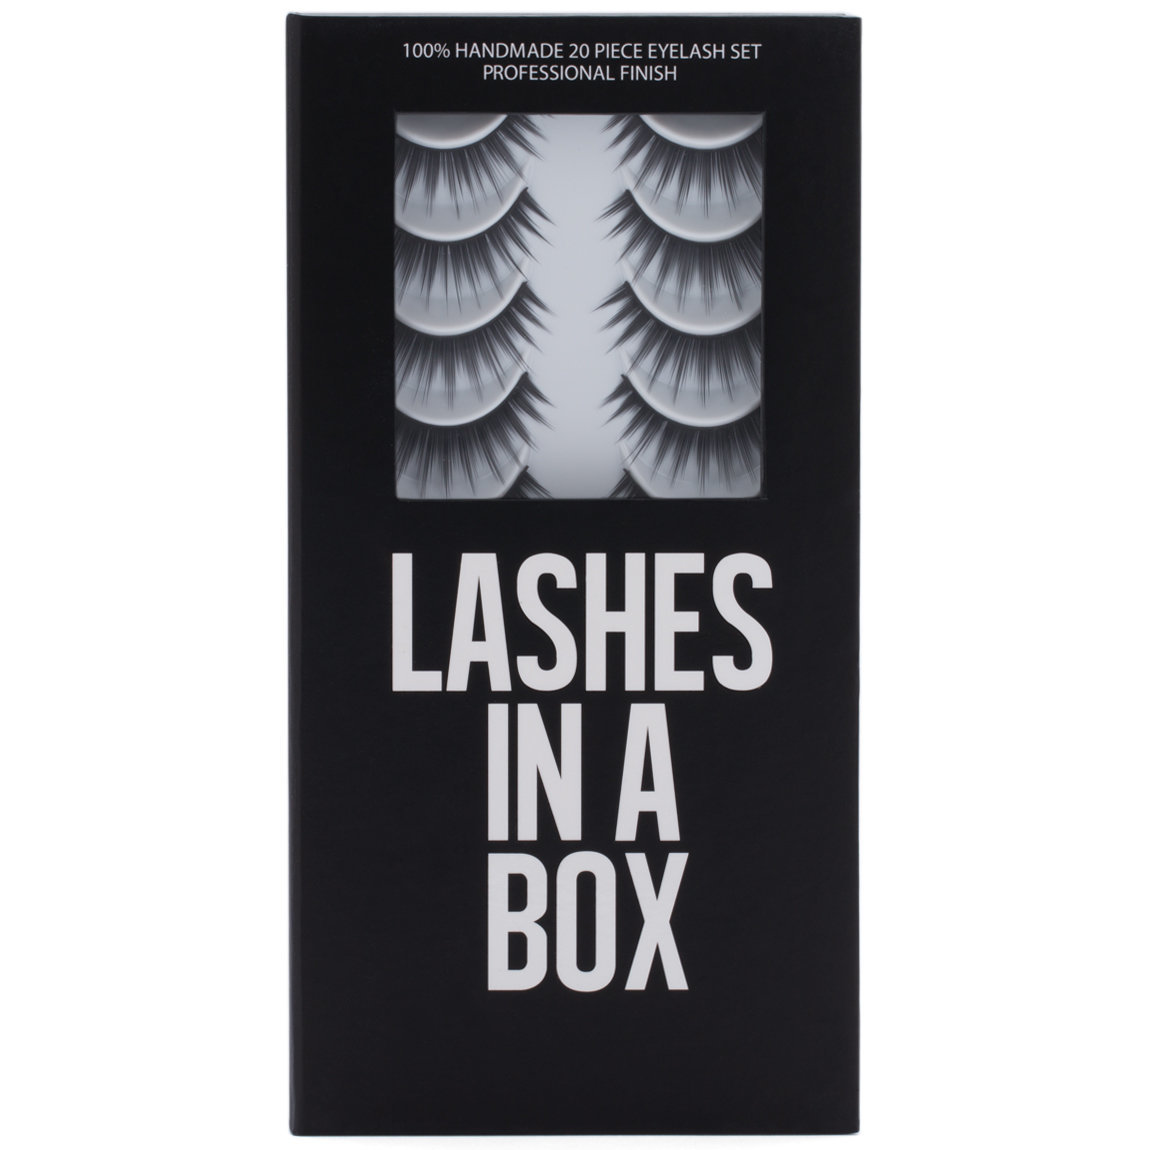 LASHES IN A BOX N°7 product swatch.